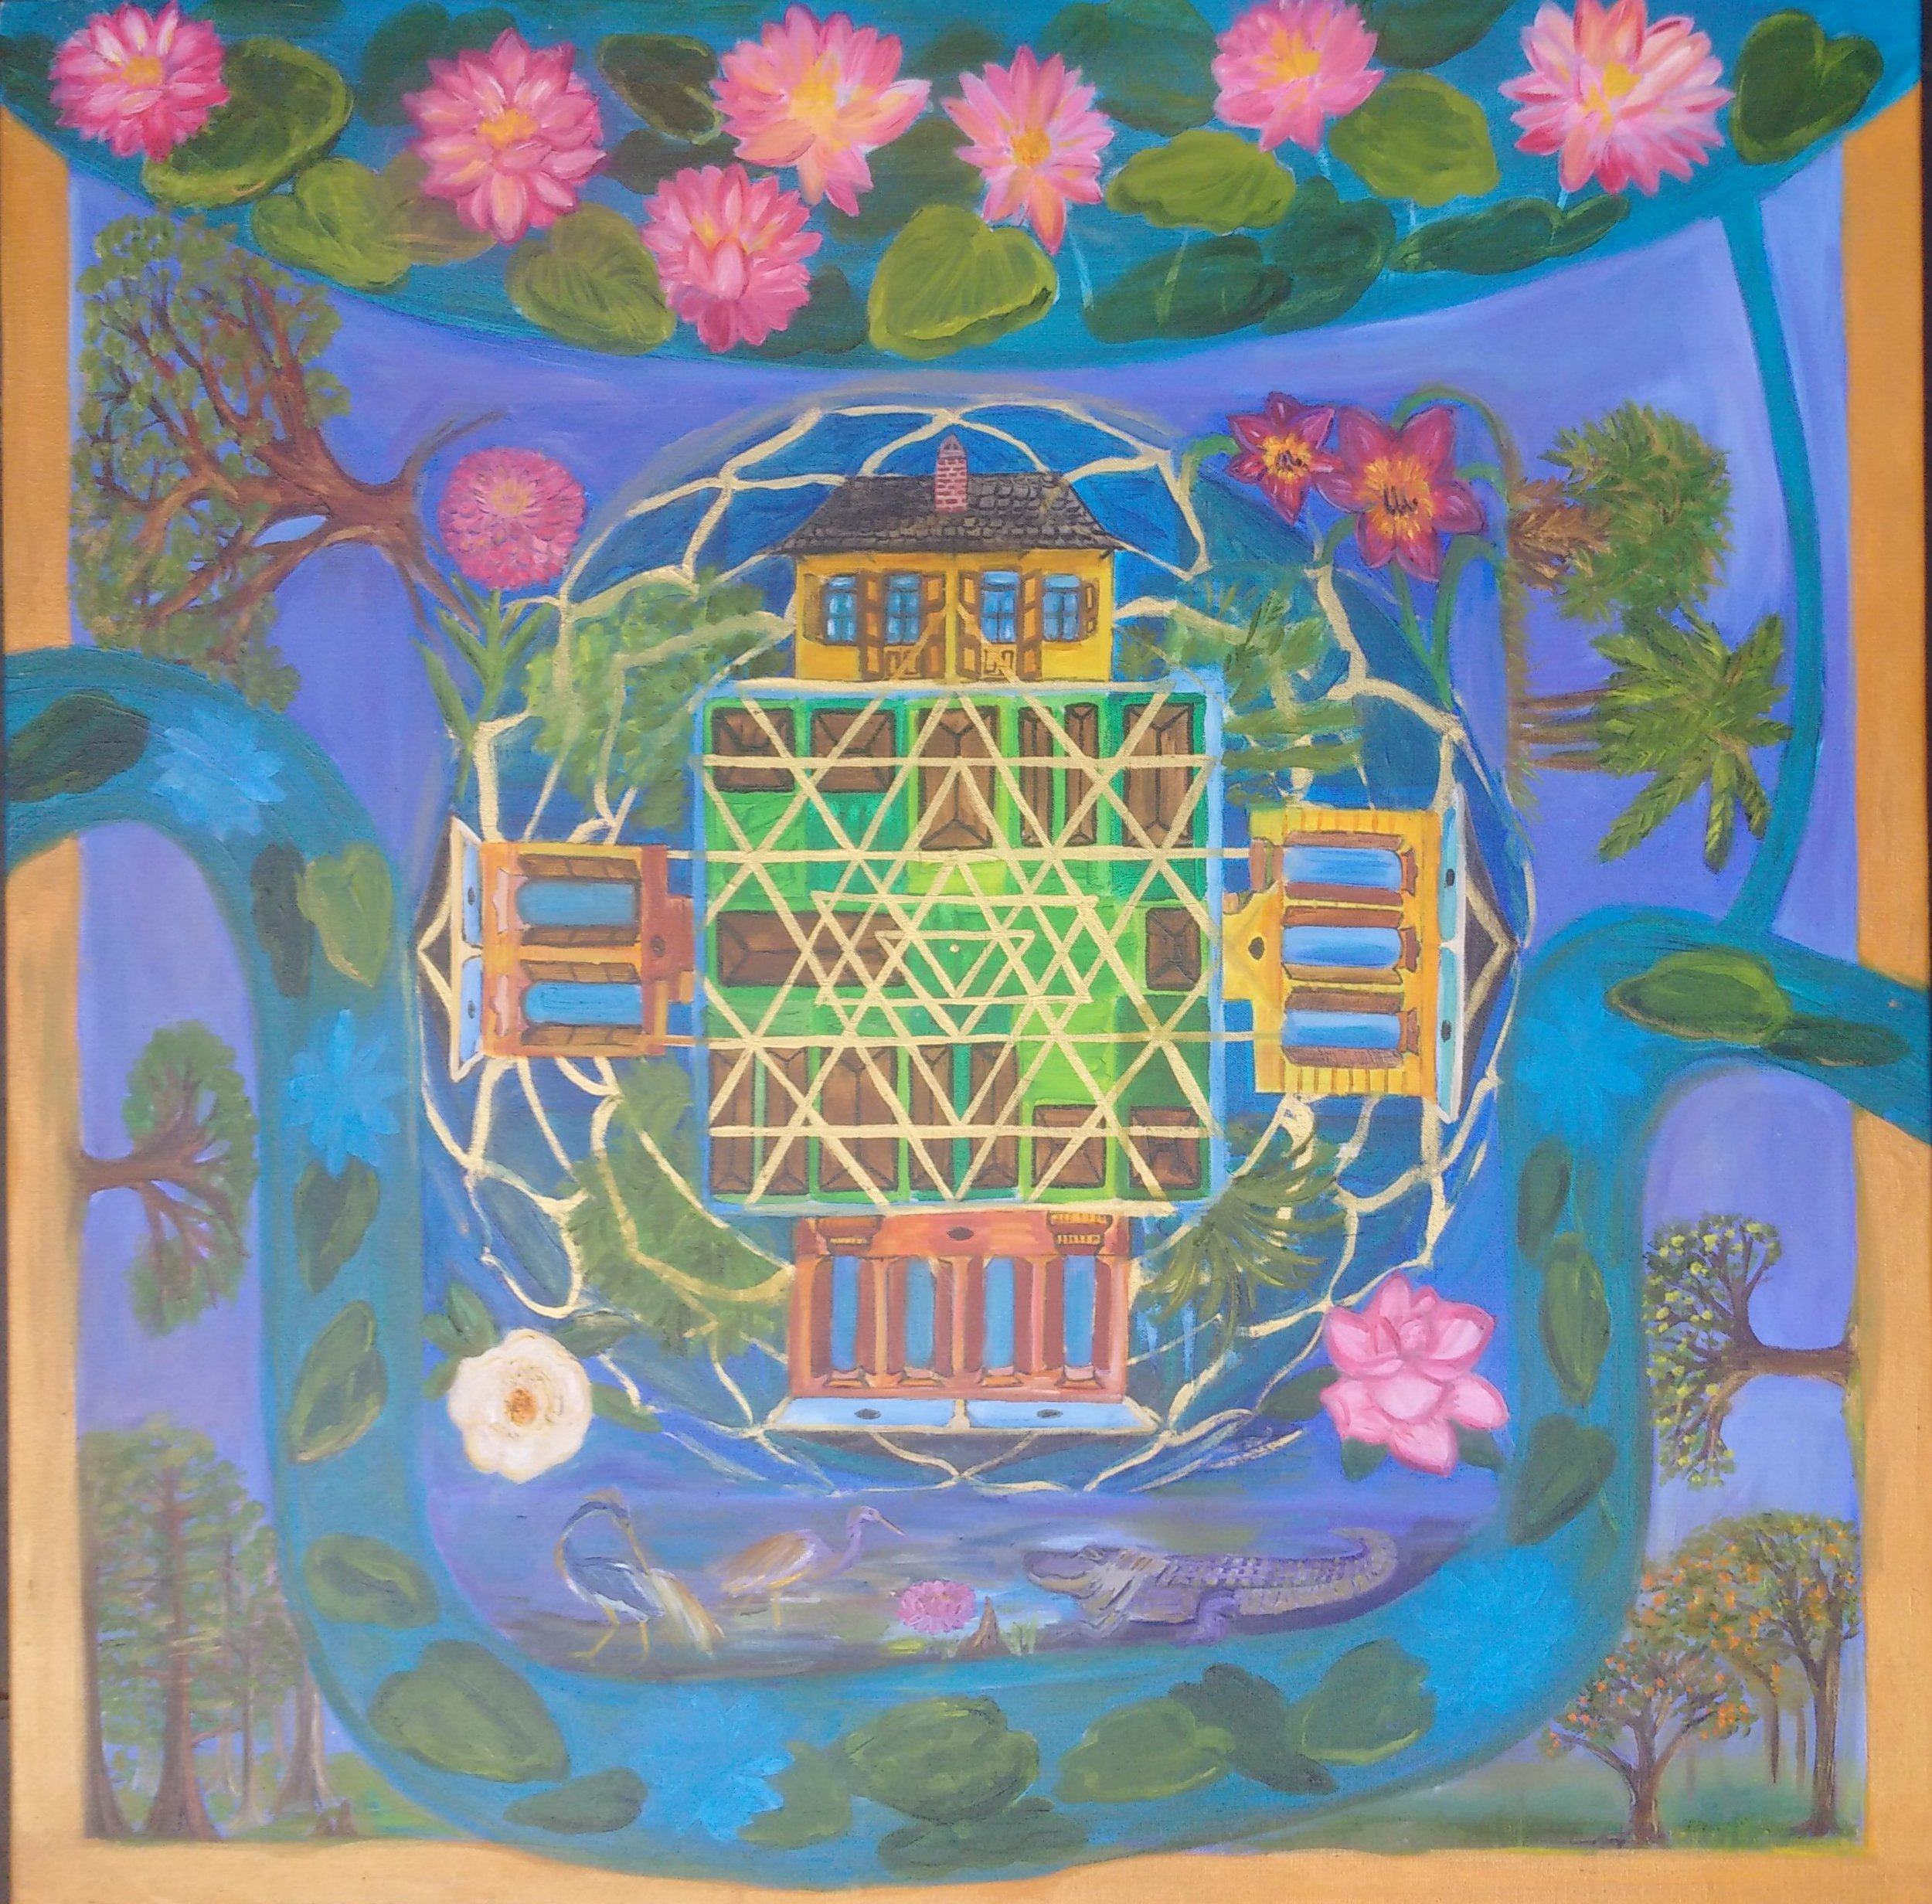 """Yantra City Mandala   Medium:    oil  on Canvas   Dimensions:  36"""" x 36"""" x .75""""   Price:  Original Oil on Canvas,  $1200   $150 20""""x20""""x1.5"""" Artist Giclee, hand embellished   Year Completed:  2014   Primary Discipline:  Painting   Description:    Sri Yantra center energy field of abundance and harmony, city block community, historical family houses [creole cottage, side hall, single, double shotgun houses), local flowers and trees, surrounded by the Mississippi and Ponchatrain Bay"""